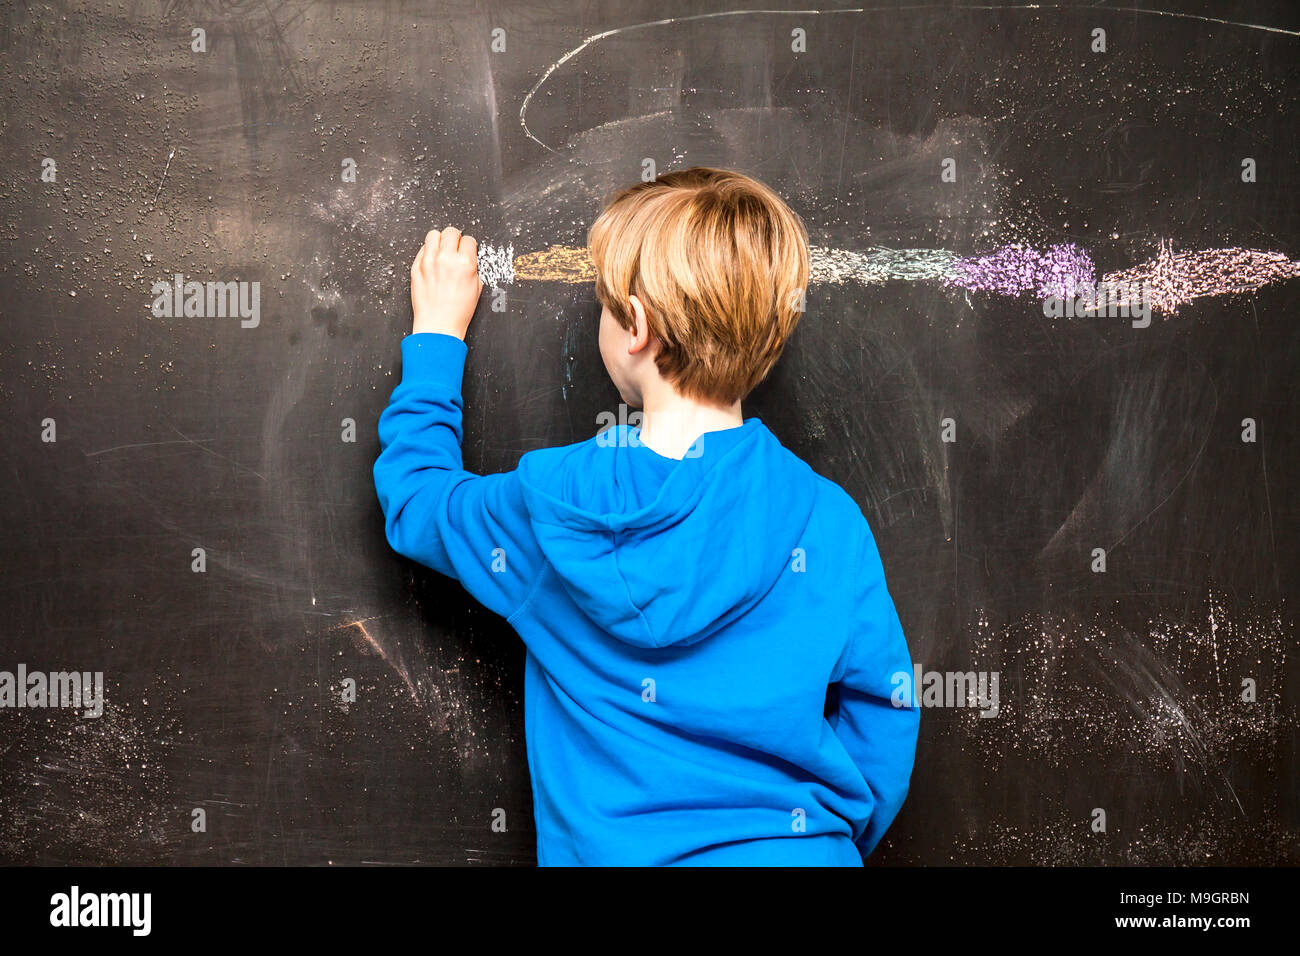 Back view of a little boy painting something on a chalkboard. - Stock Image